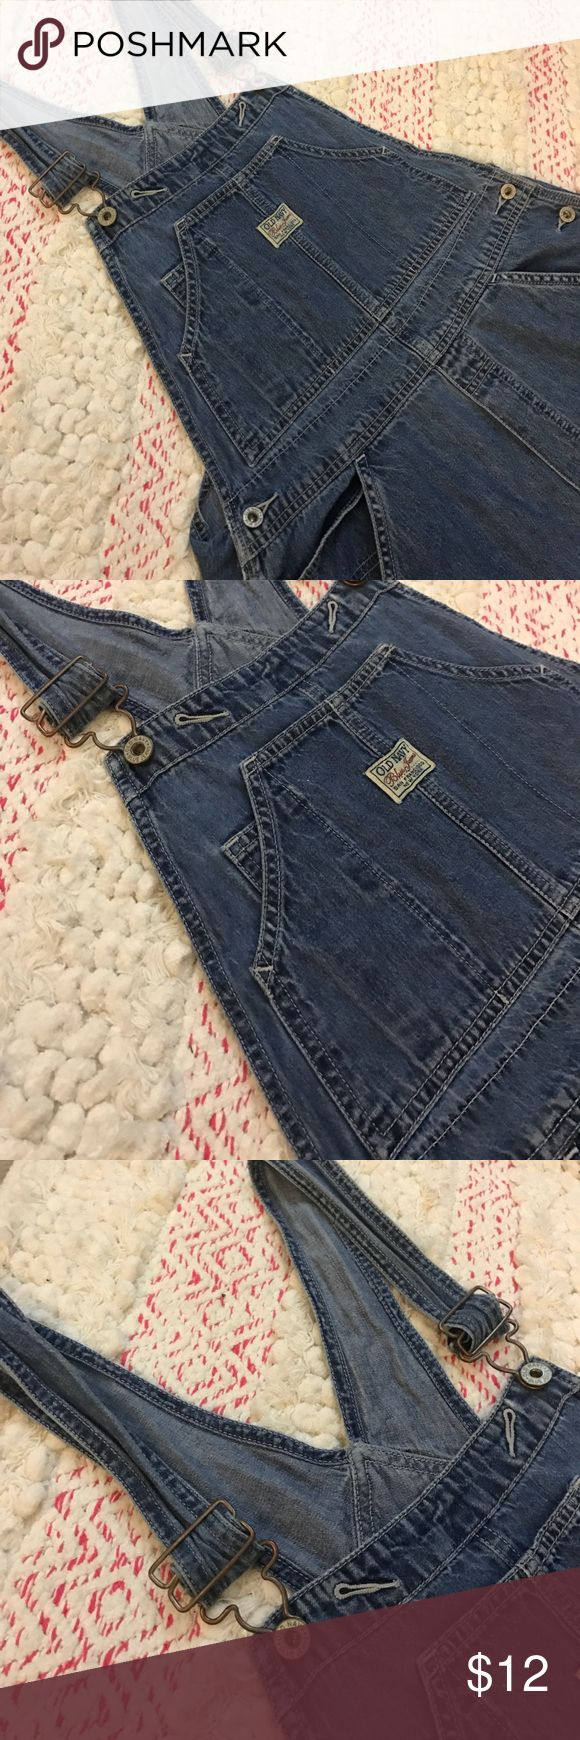 """Vintage Old Navy Overalls Here's some awesome vintage Old Navy overalls! Size Medium with a inseam of 30"""" but the straps are adjustable which is always great for extra length! Super comfy and in great shape! Perfect for a 90s theme party or for just regular wear! :) Old Navy Jeans Overalls"""